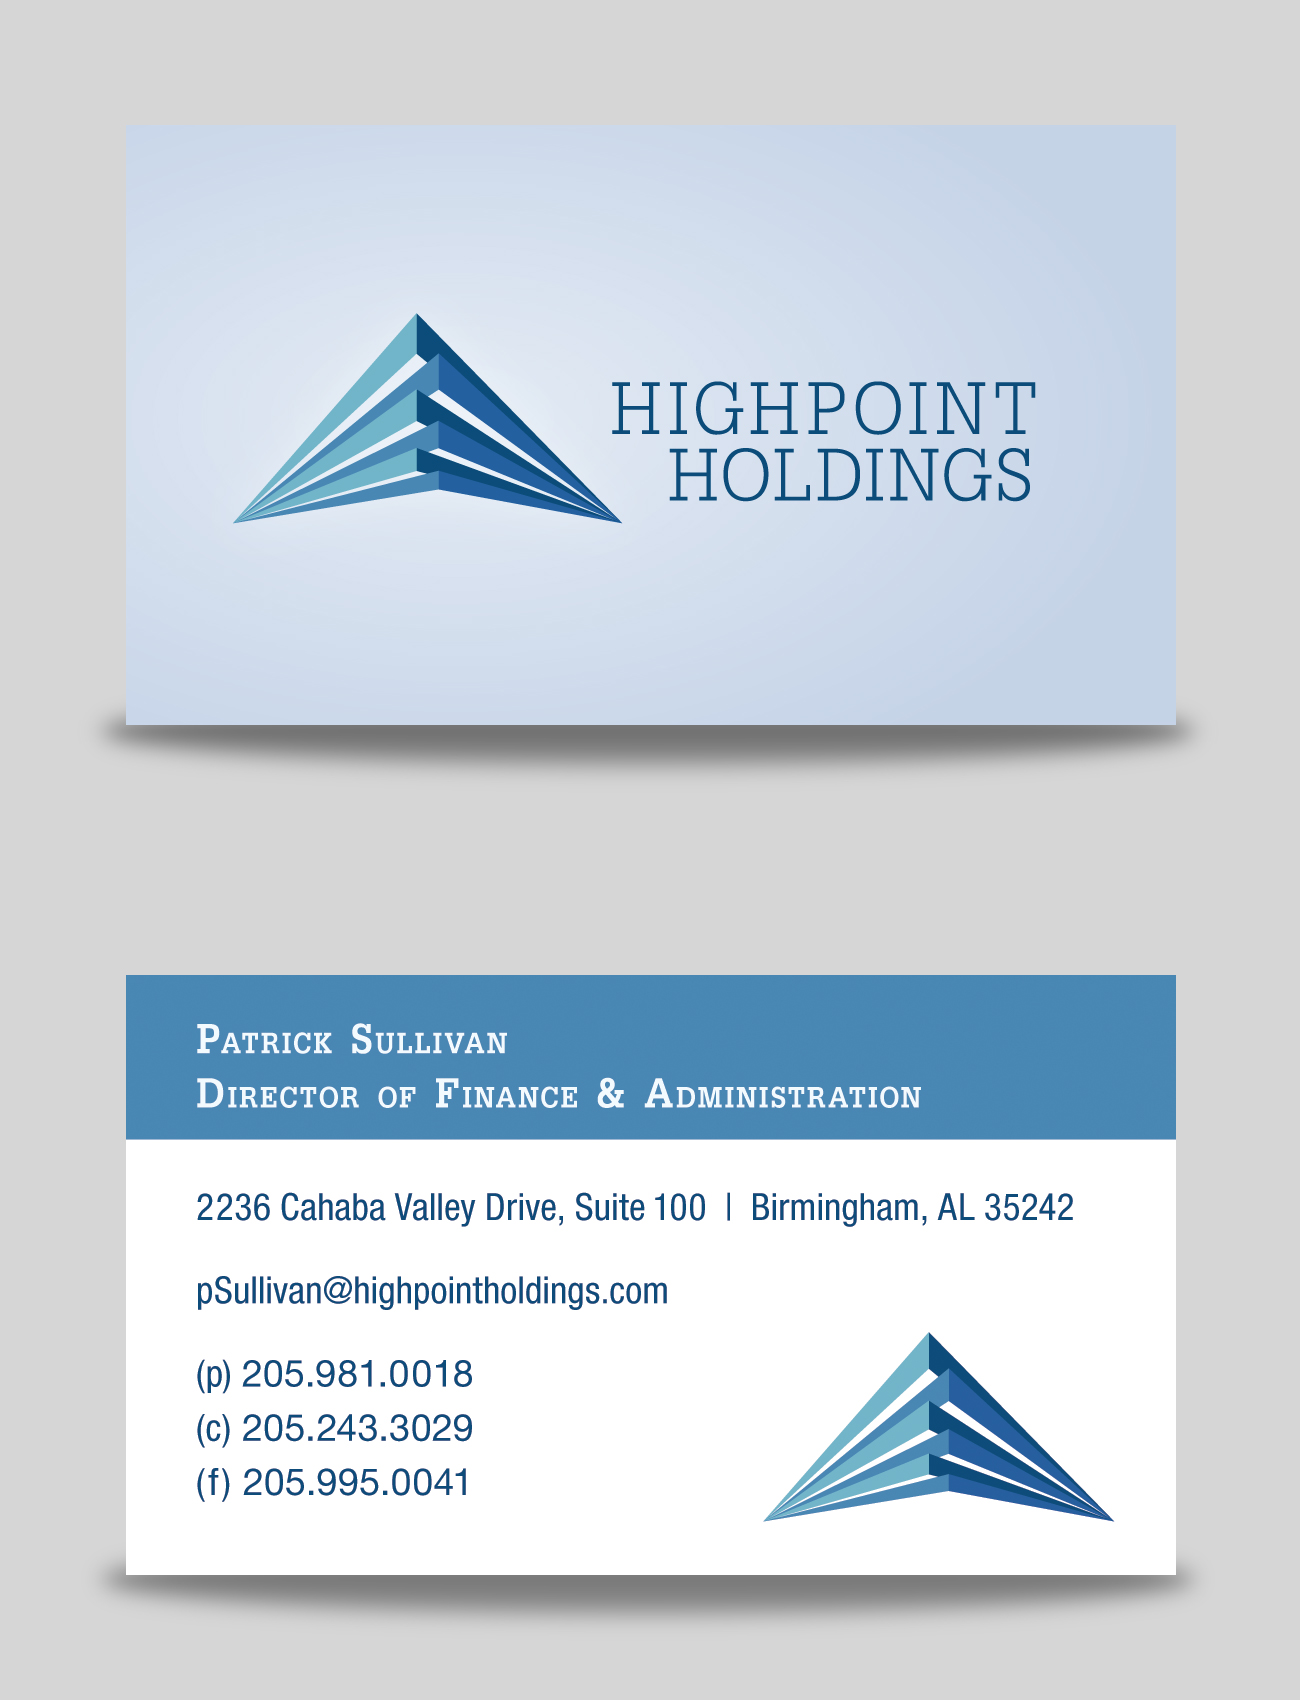 HighPoint Holdings Business Card